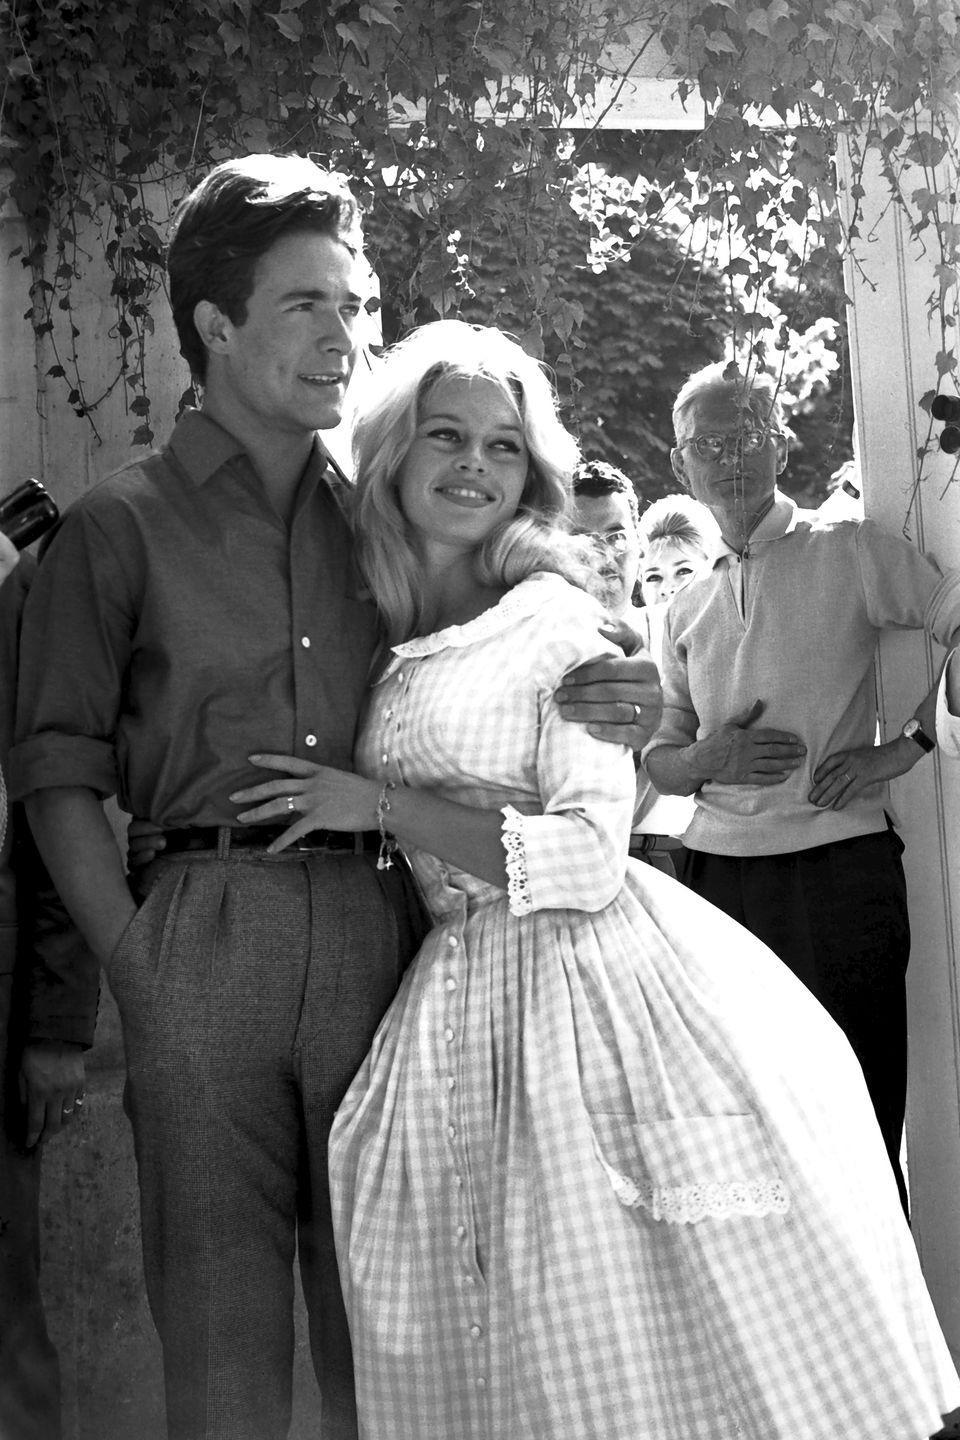 <p>Brigitte Bardot and her <em>Babette Goes to War</em> costar, Jacques Charrier, were married in a registry office in Louveciennes, France. The bride wore a simple, yet chic, pink gingham shirt dress for the ceremony.</p>